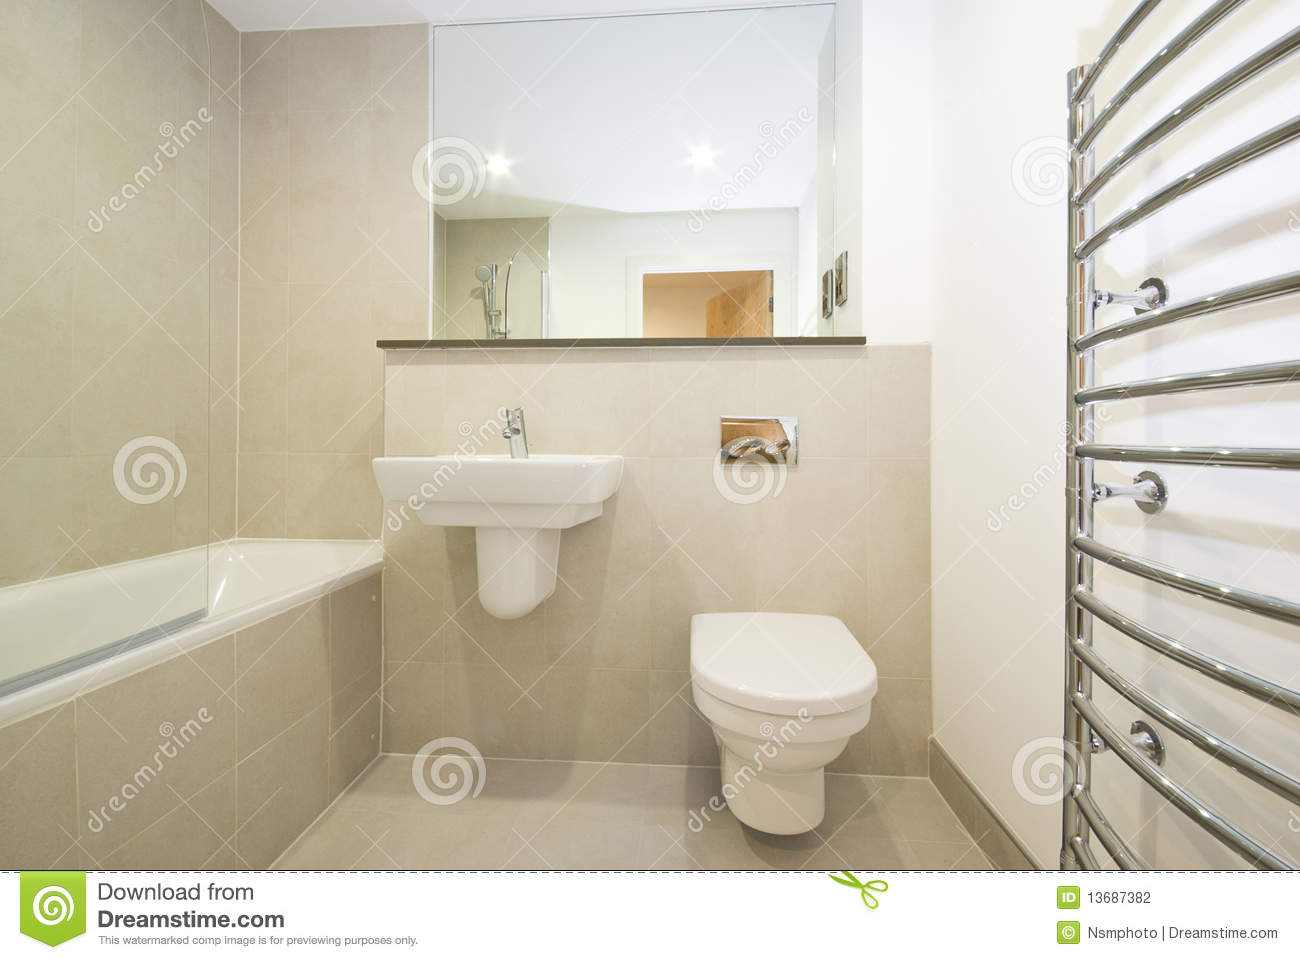 Bad Ideen Modern Modern En Suie Bathroom In Beige Stock Photo Image Of Interior